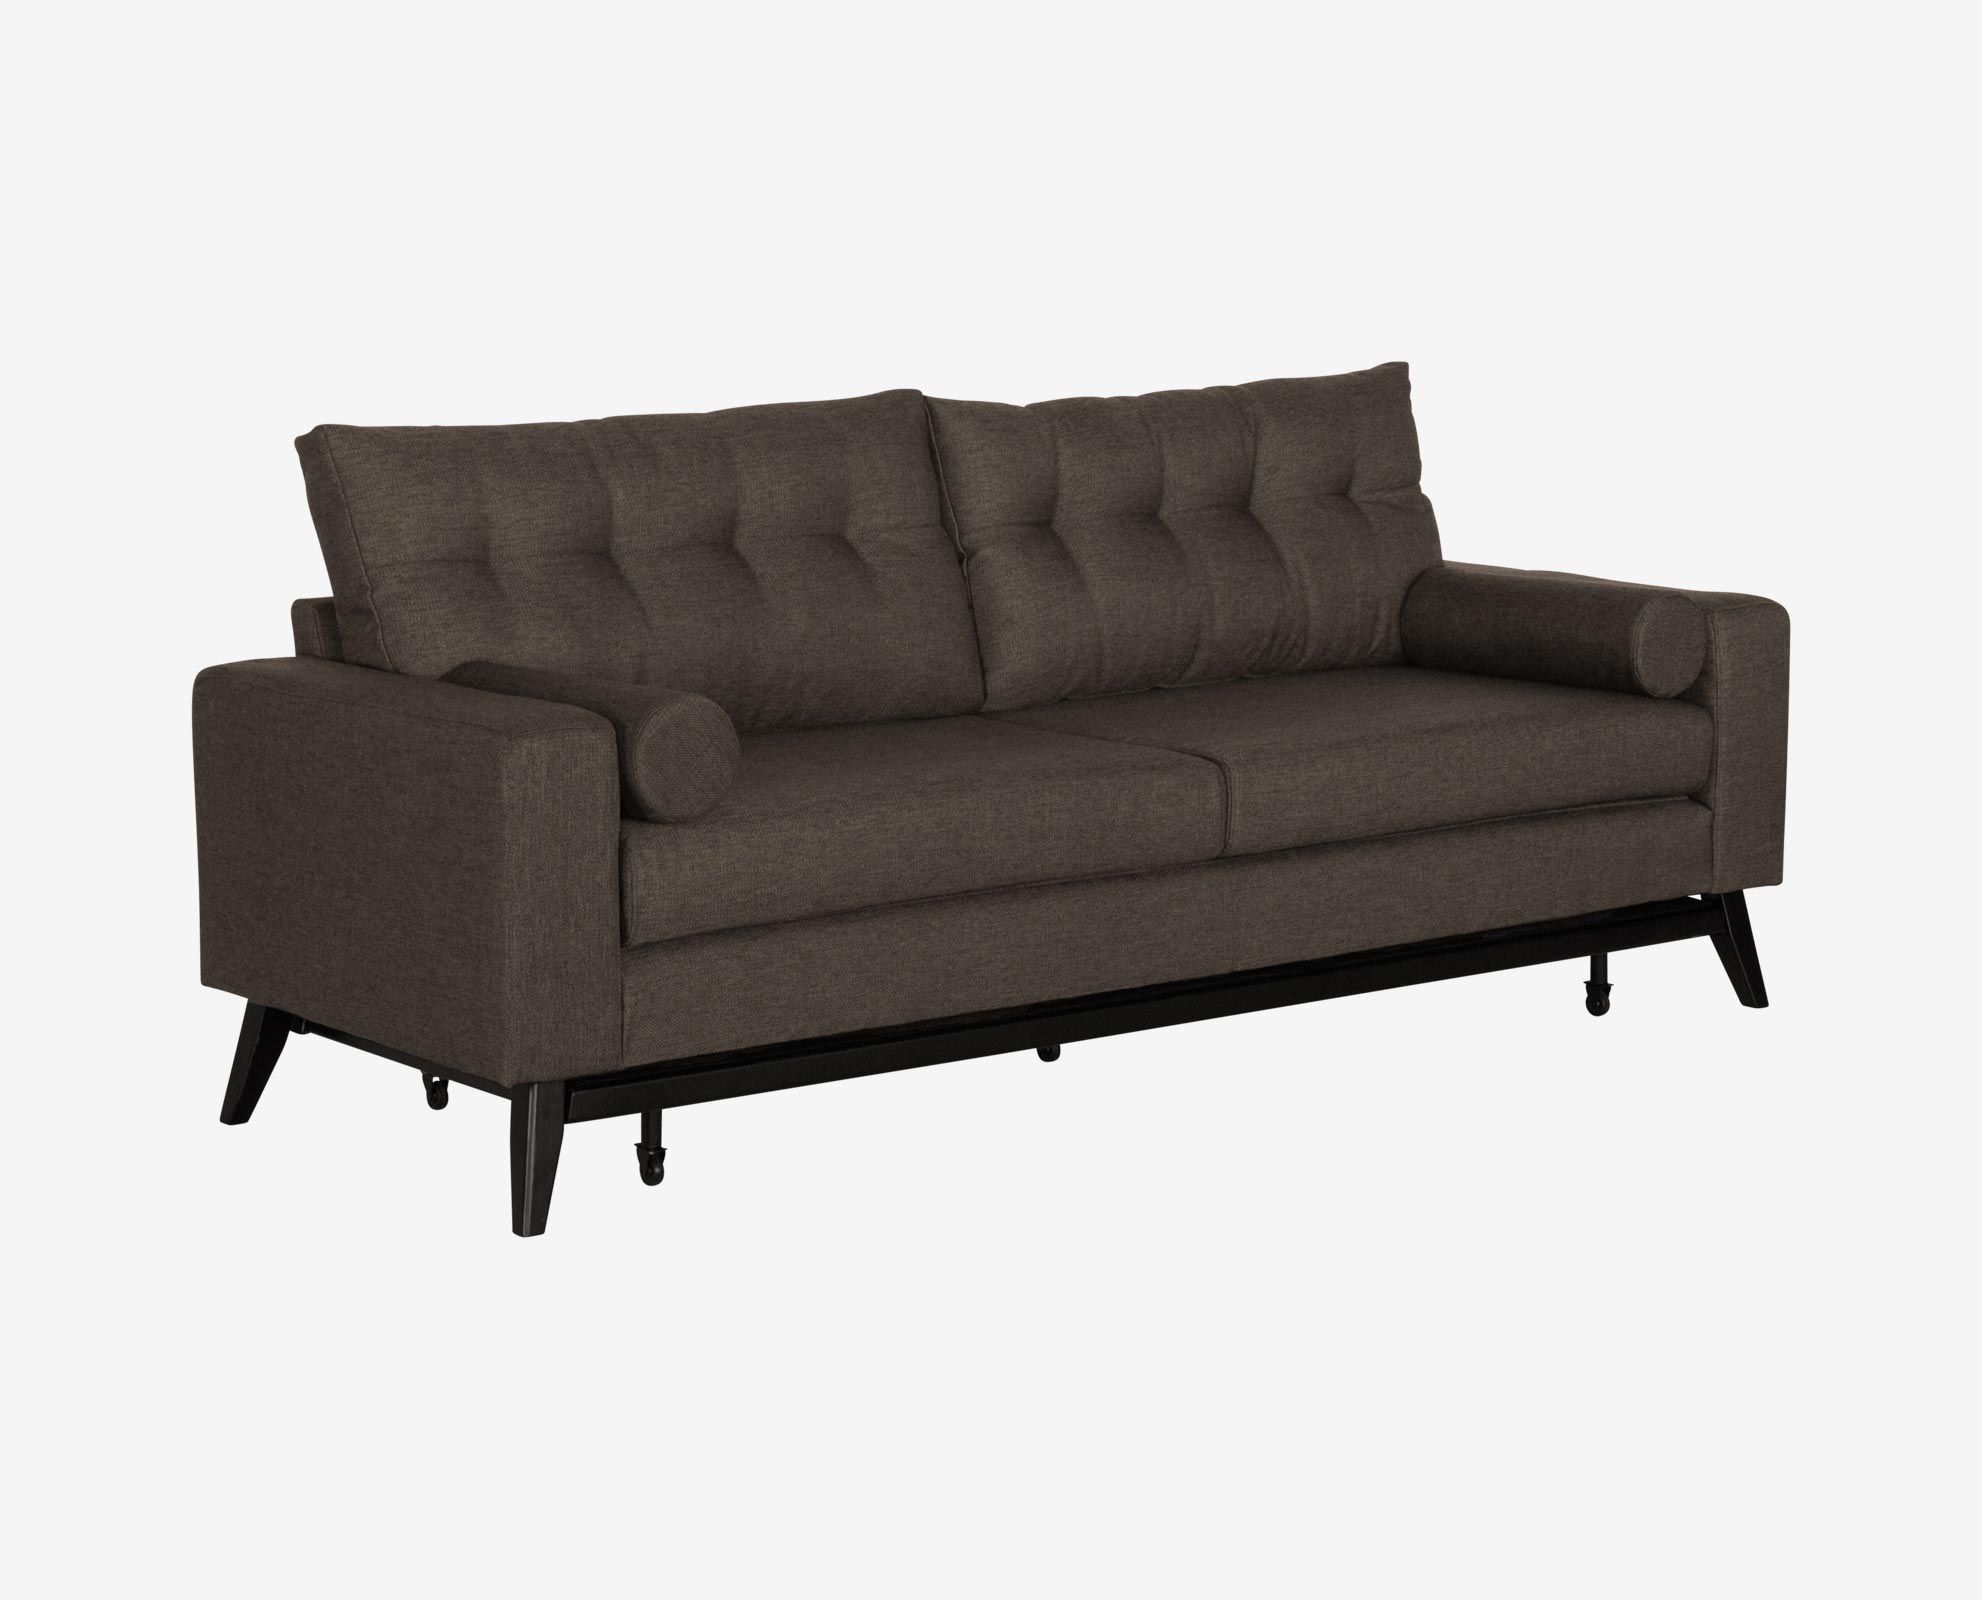 Angled sofa sectional angled sofa sectional with for Angled chaise sofa